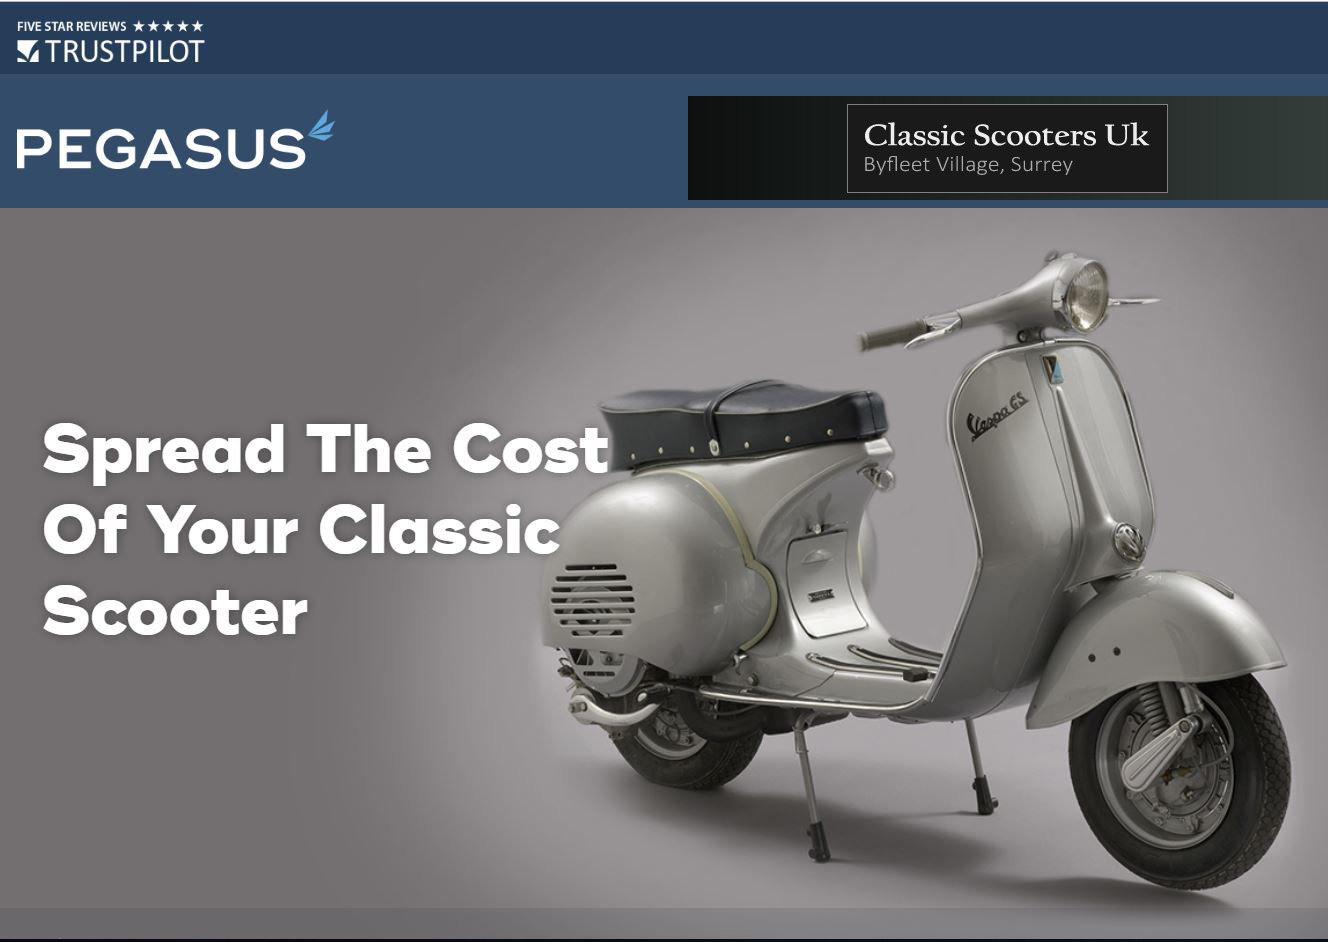 1964 MotoVespa 150S  (125cc) GS160 Look-A-Like - UK Restored For Sale (picture 4 of 4)